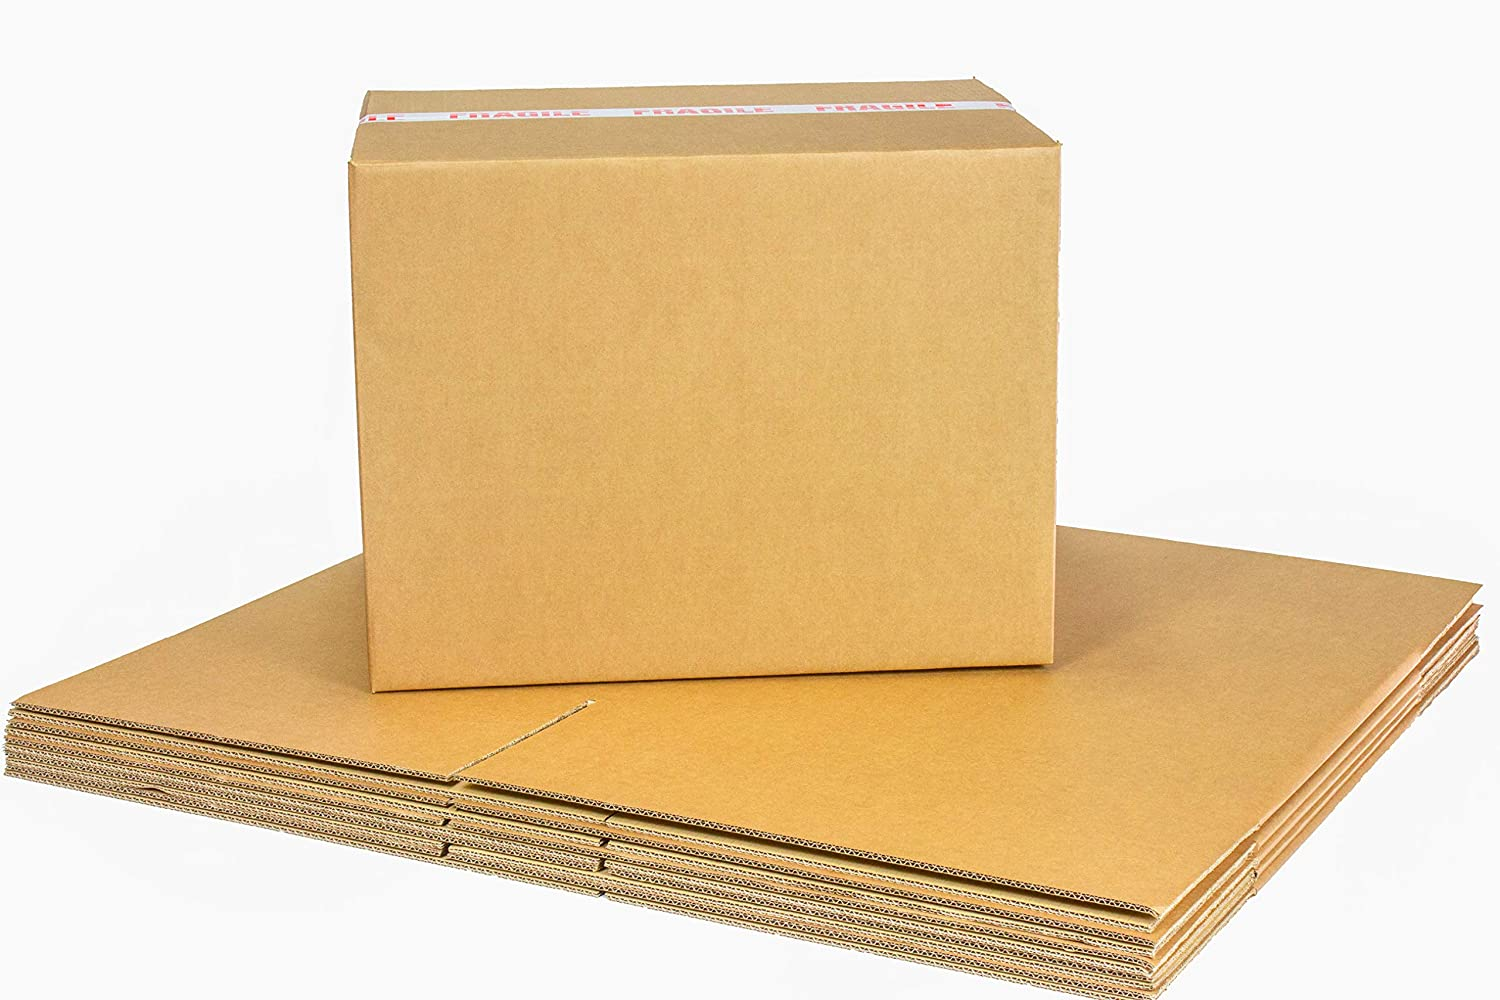 Cardboard Boxes for Storage Size Packing Or Moving House Double Walled with Free Quality Fragile Tape /& Black Marker Pen 5 Strong Extra Large 60cm x 45cm x 45cm XXL